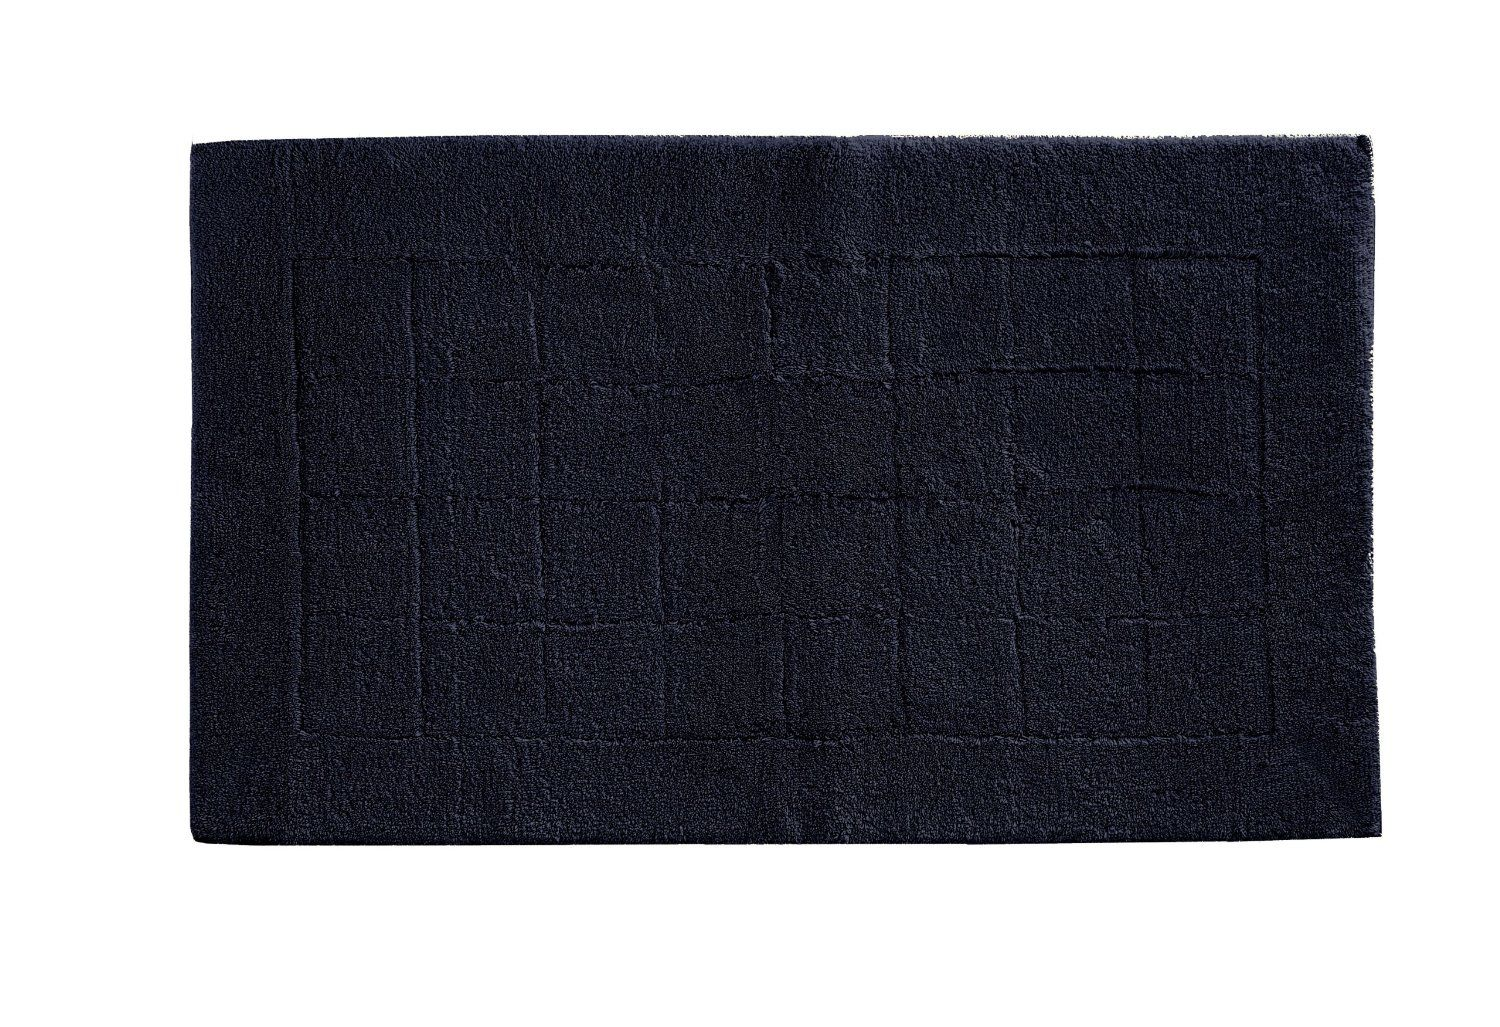 Exclusive bath mat range in night